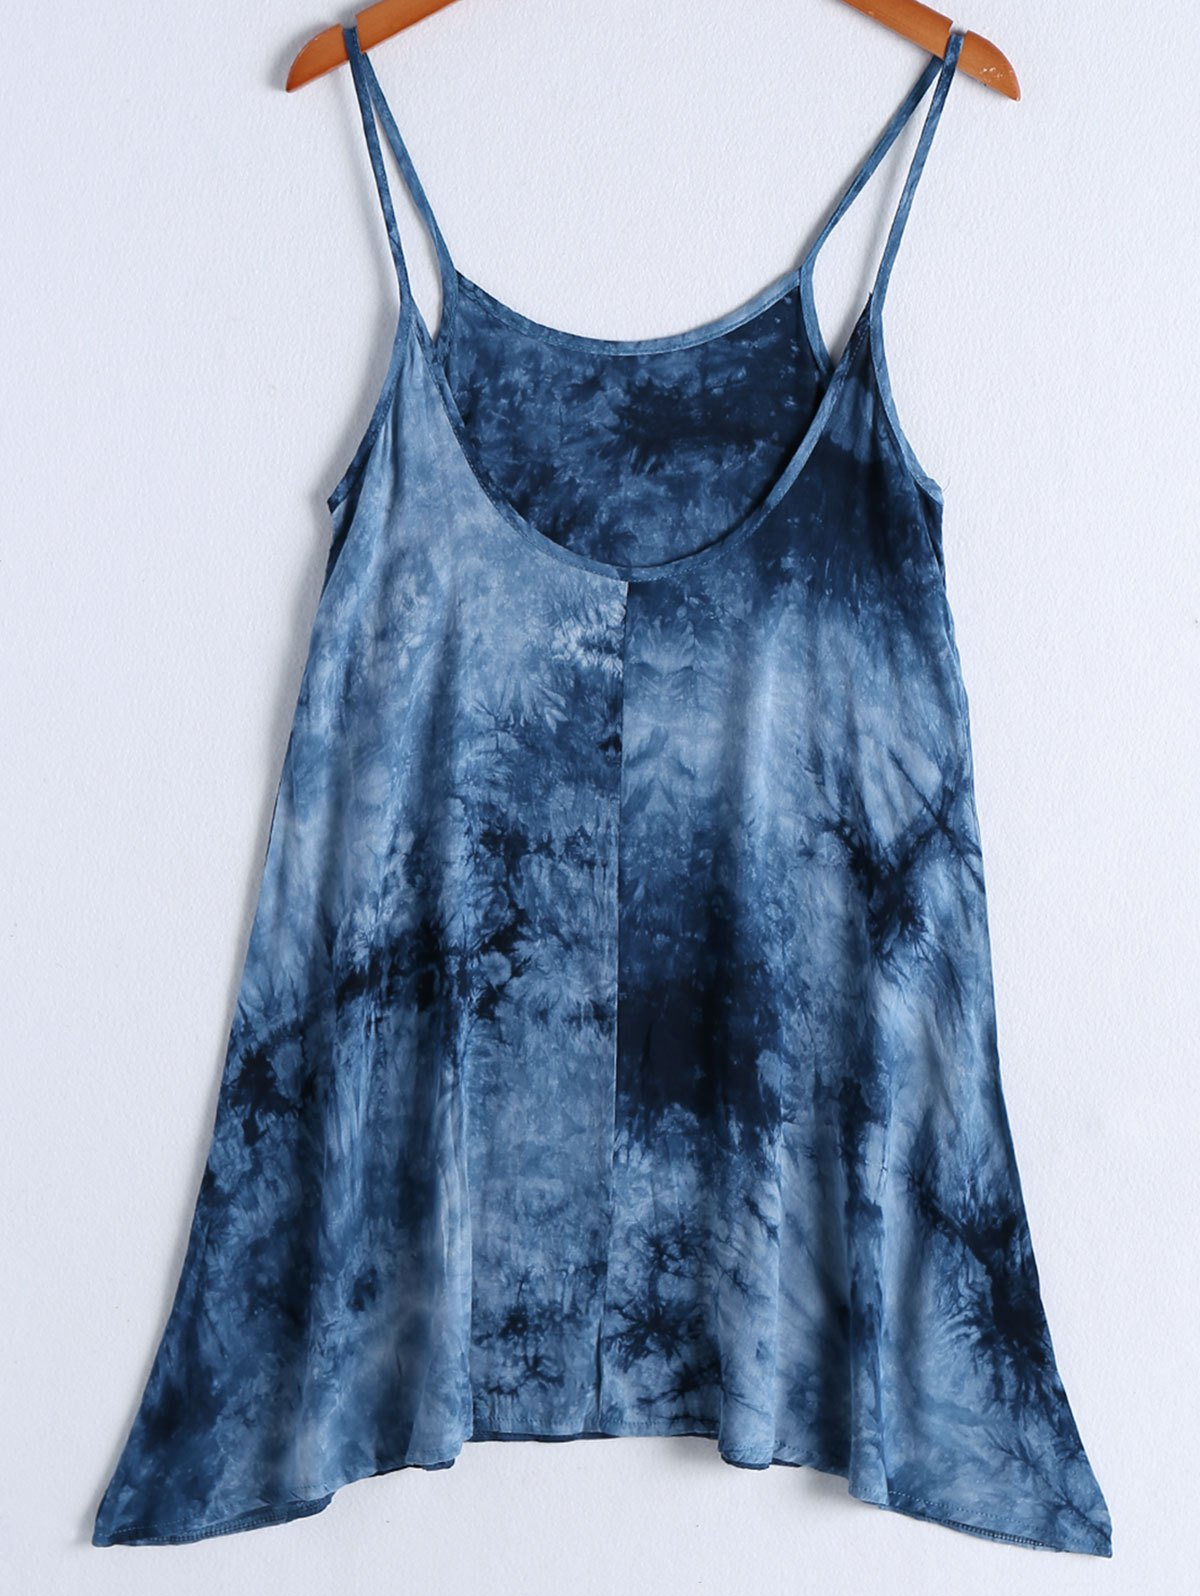 Casual Women's Spaghetti Strap Tie Dye Knee Length Dress - BLUE S